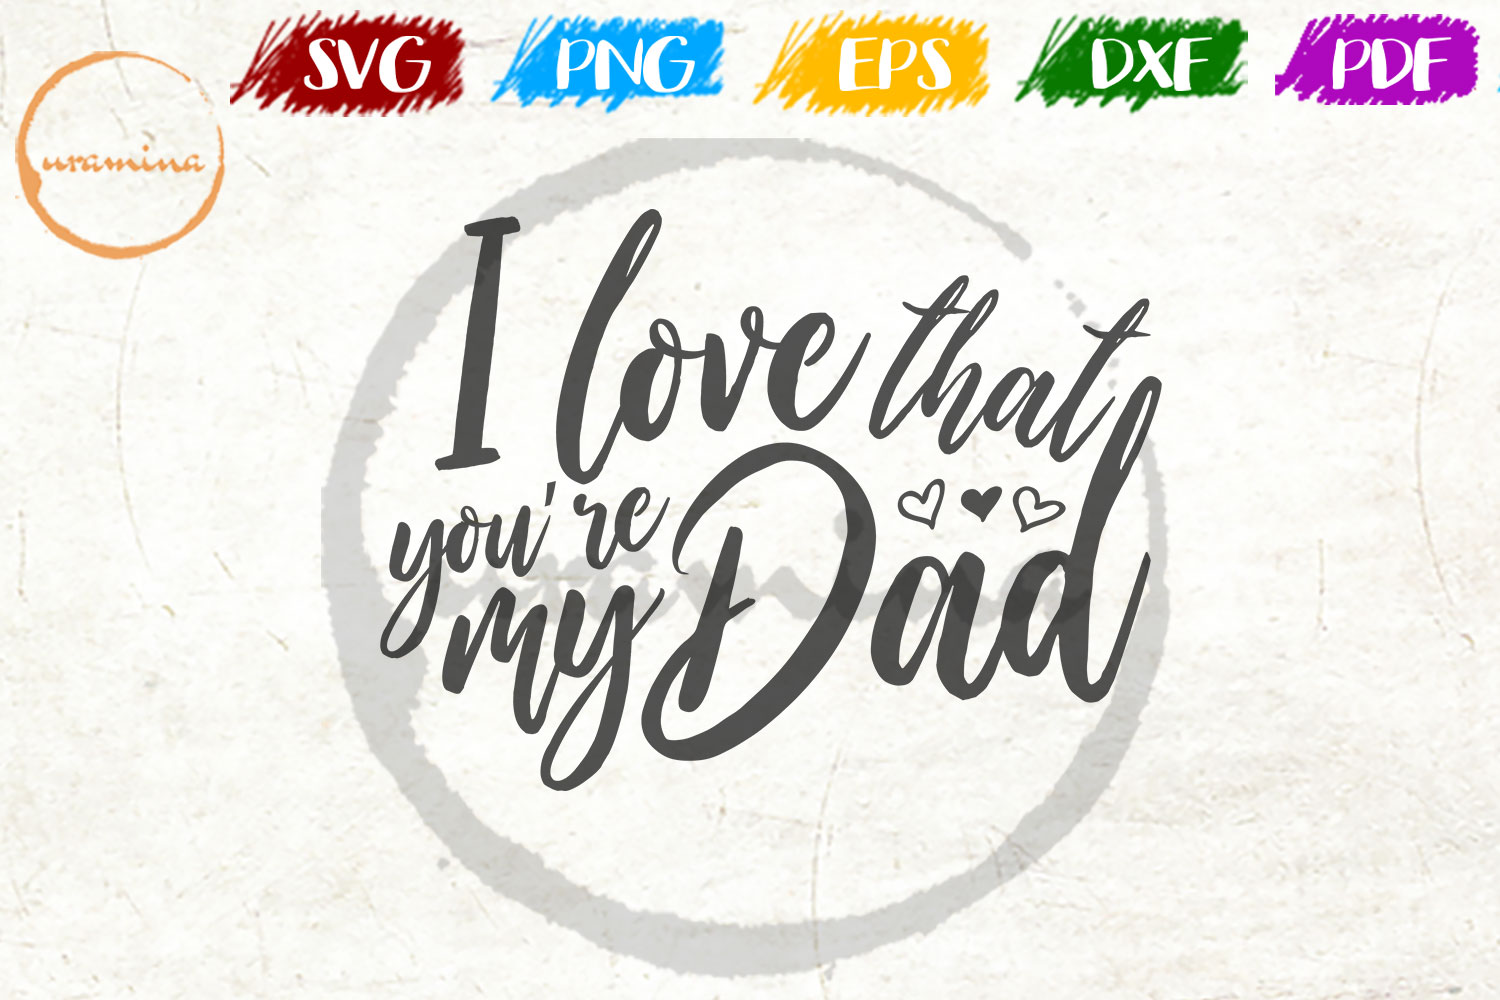 Download Free I Love That You Re My Dad Graphic By Uramina Creative Fabrica for Cricut Explore, Silhouette and other cutting machines.